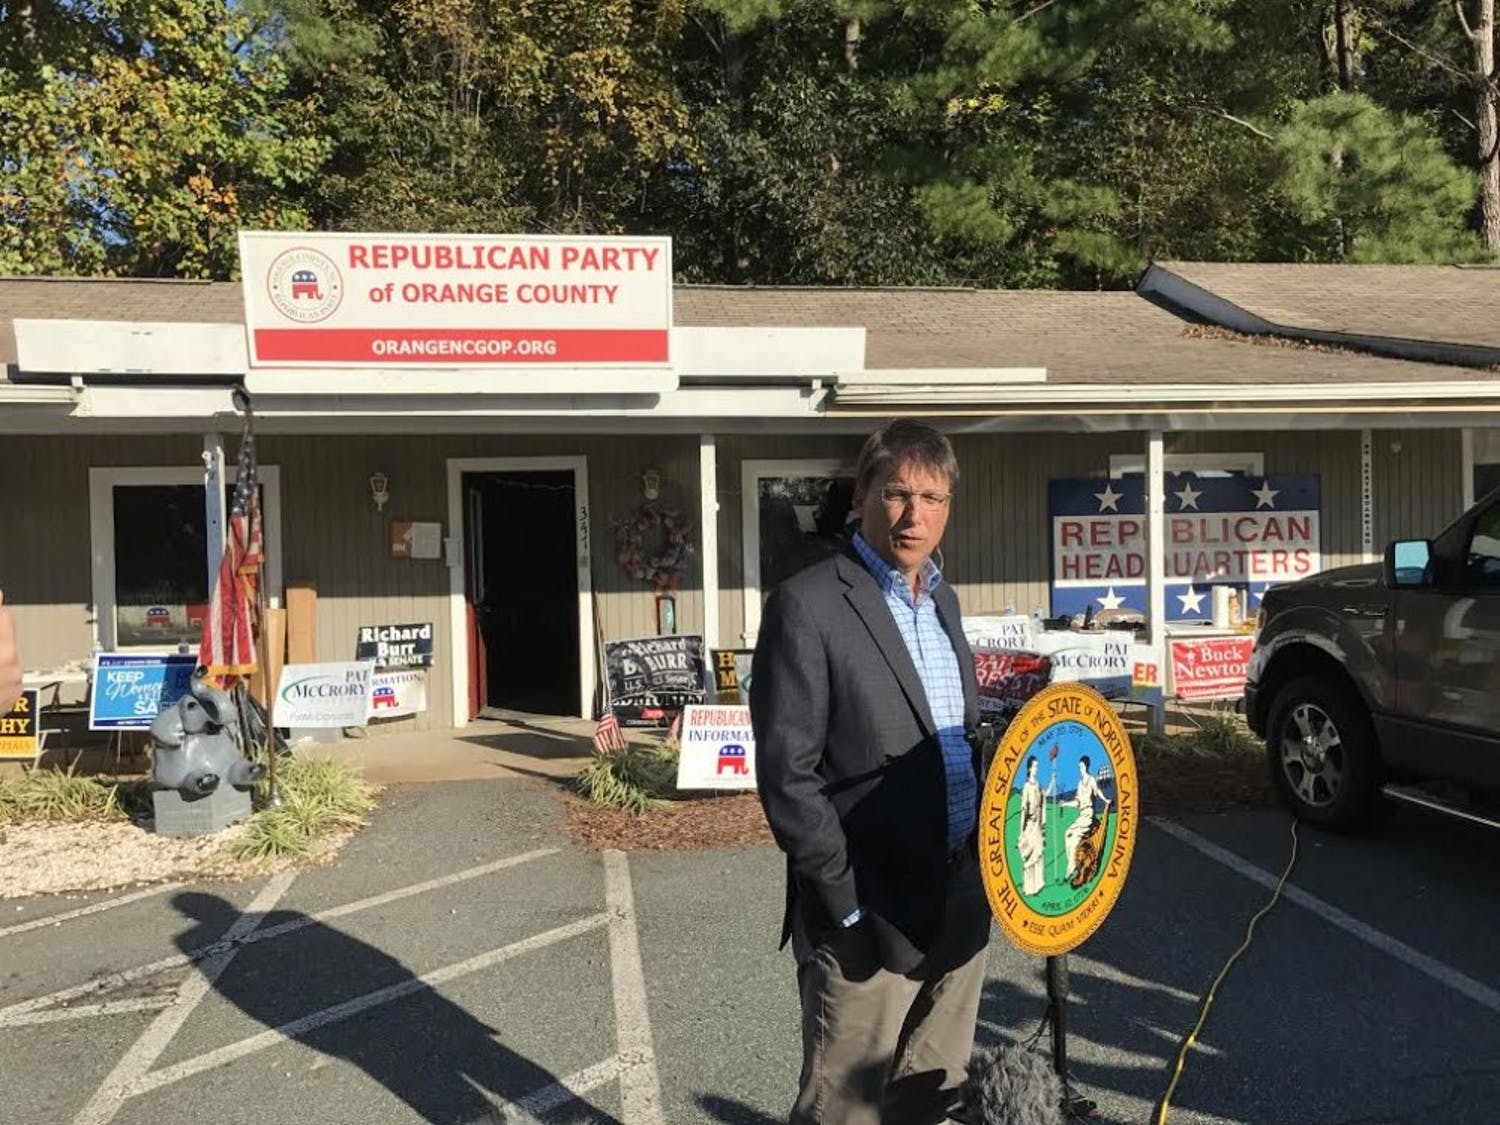 Governor Pat McCrory answers press questions and discusses the impact of the vandalism and firebombing incident on the upcoming election.